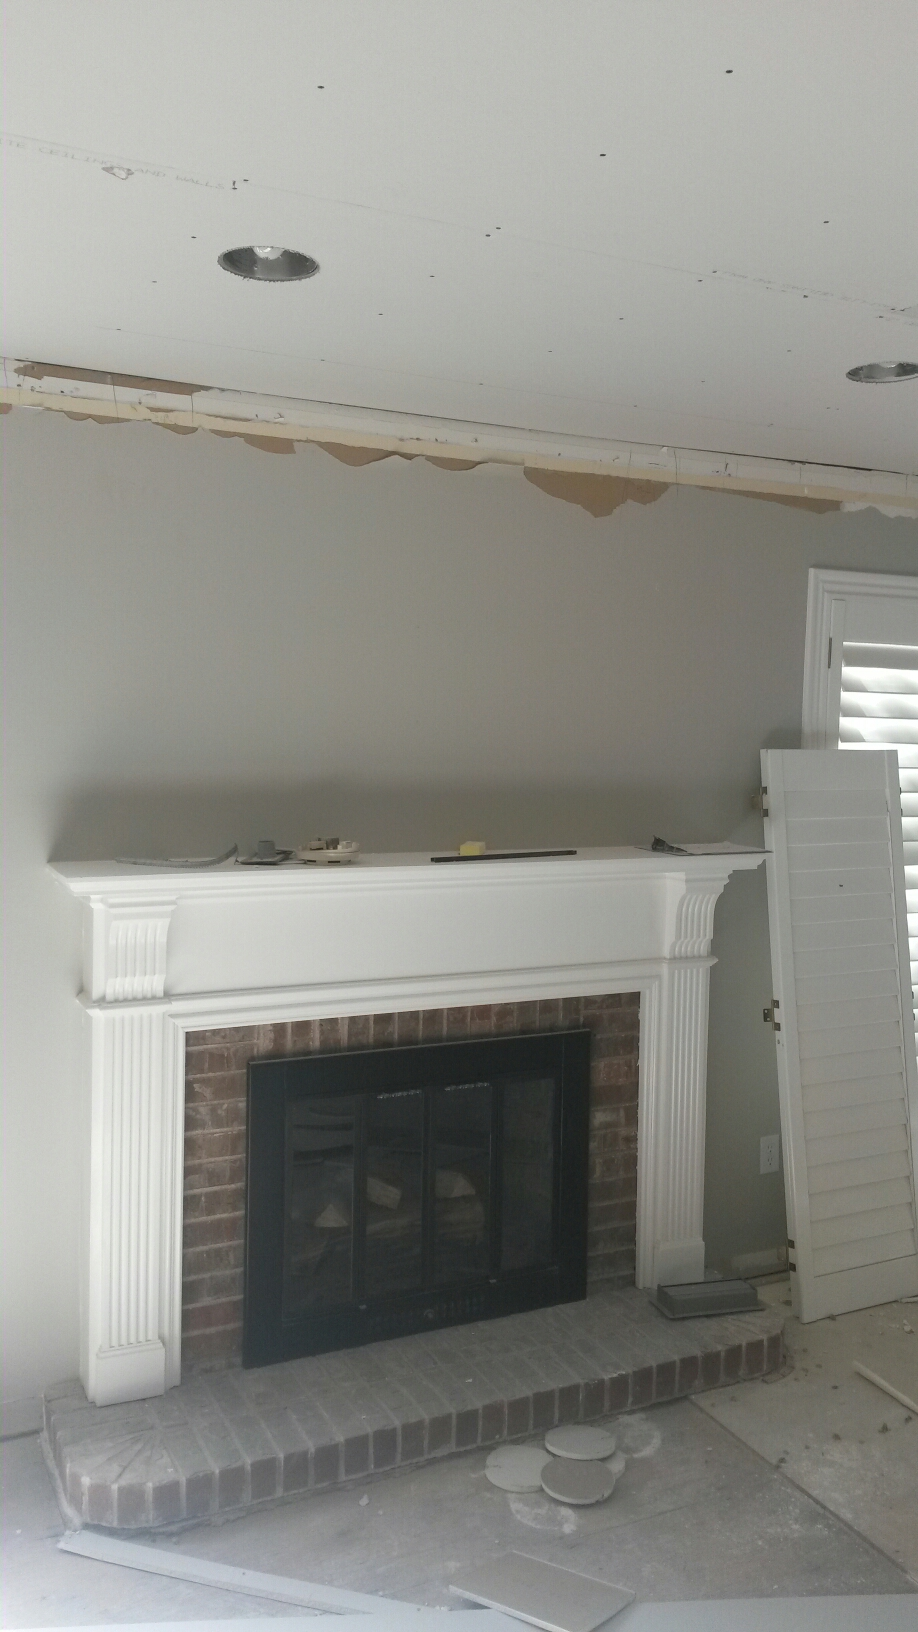 Layton, UT - Water damage repairs in Layton Utah. The electrical insulation and drywall repairs are progressing nicely. We will soon be ready to start finish carpentry and painting. And eventually it will be as good as or better than it was before the water damage.